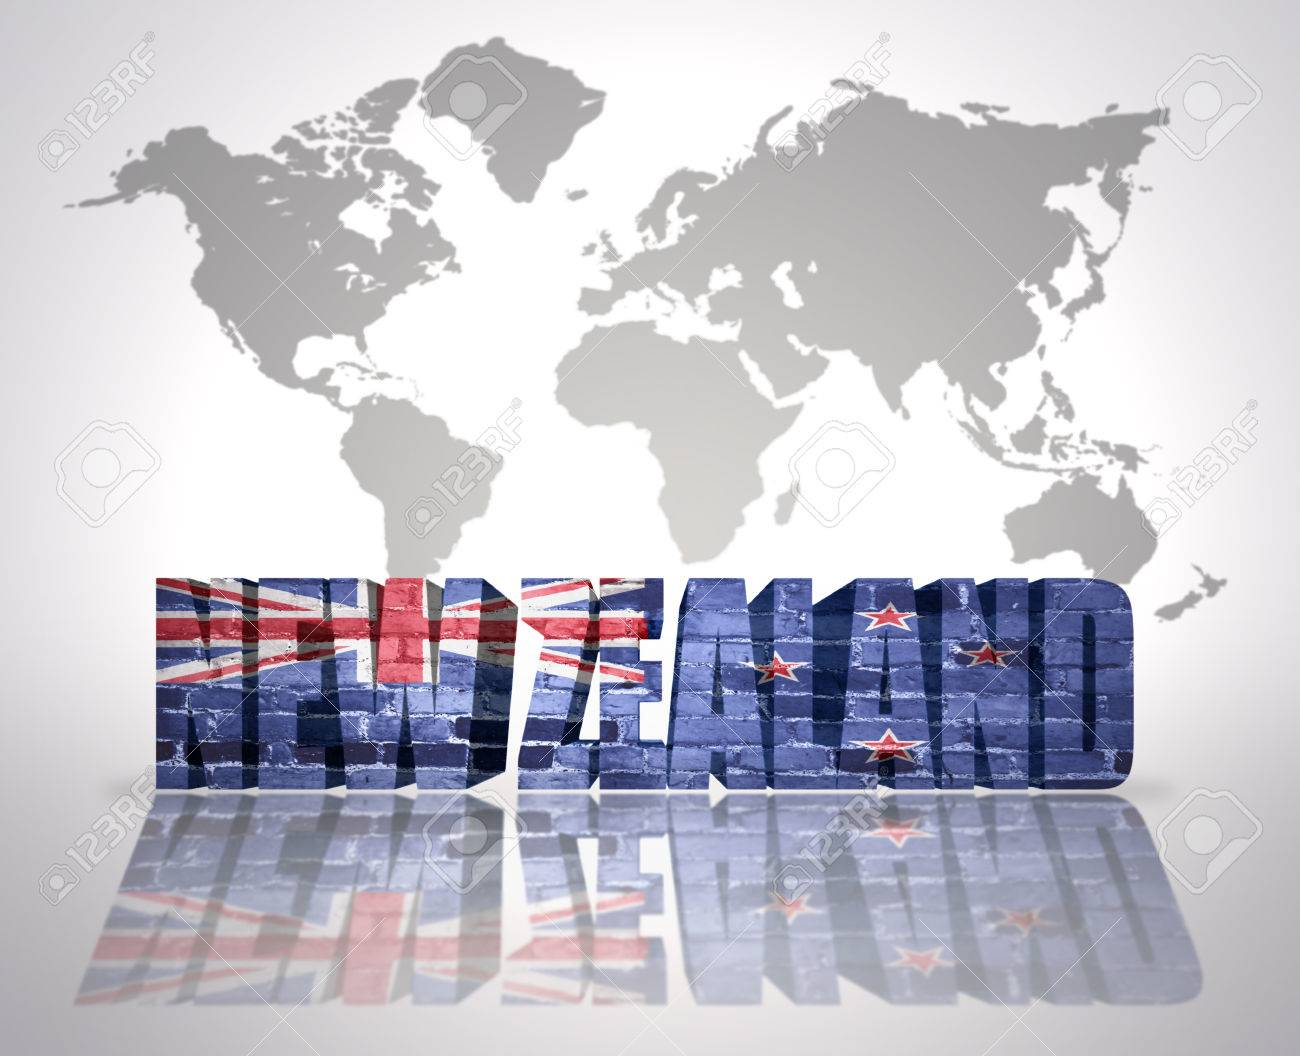 Word new zealand with new zealand flag on a world map background stock photo word new zealand with new zealand flag on a world map background gumiabroncs Choice Image